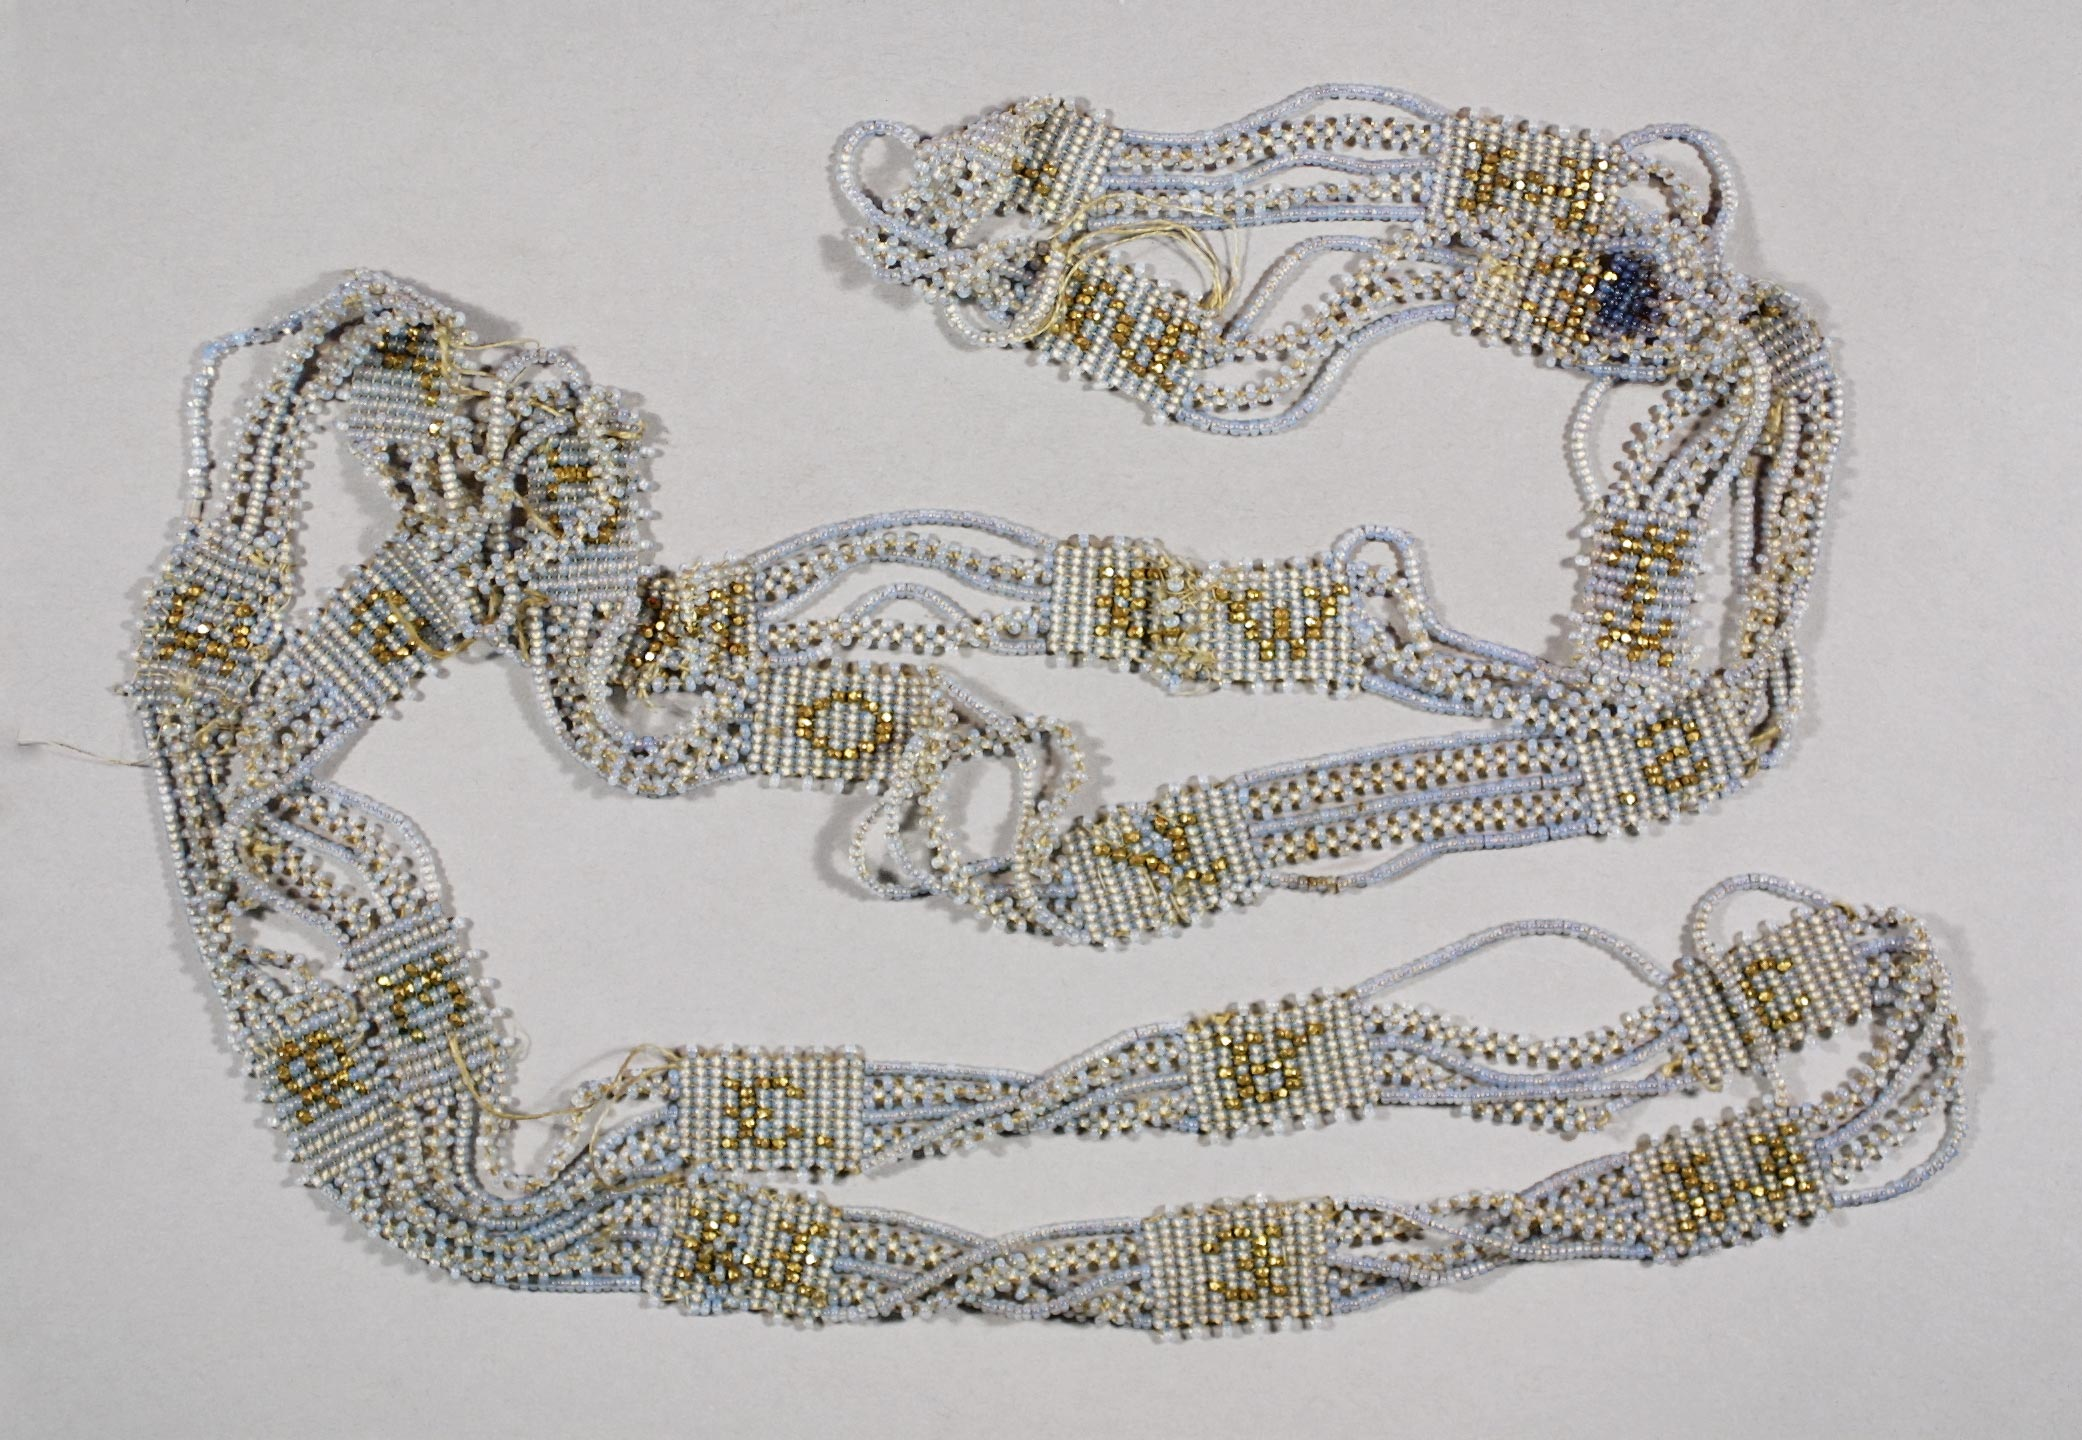 Beaded chain, New England, ca. 1830–1840. Glass beads, ½ in. wide. Historic New England, Bequest of Katherine L. Rust, 1947.230.